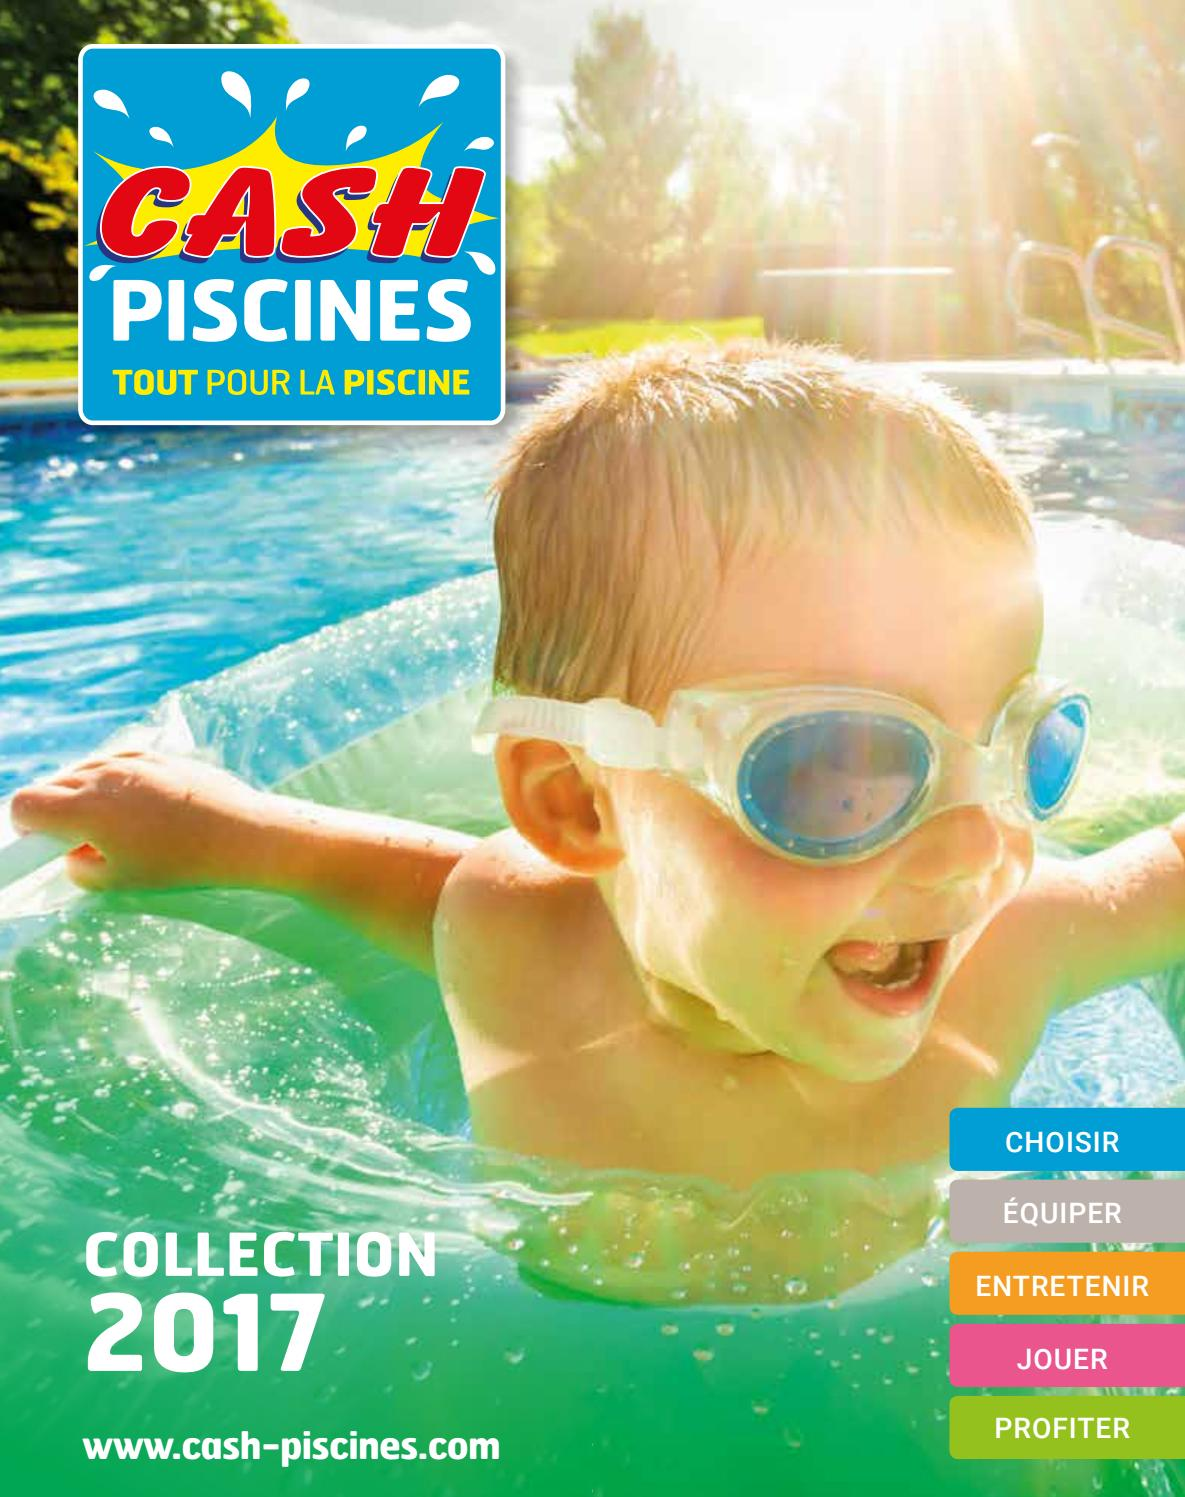 Catalogue cash piscine 2017 by octave octave issuu for Cash piscine oloron